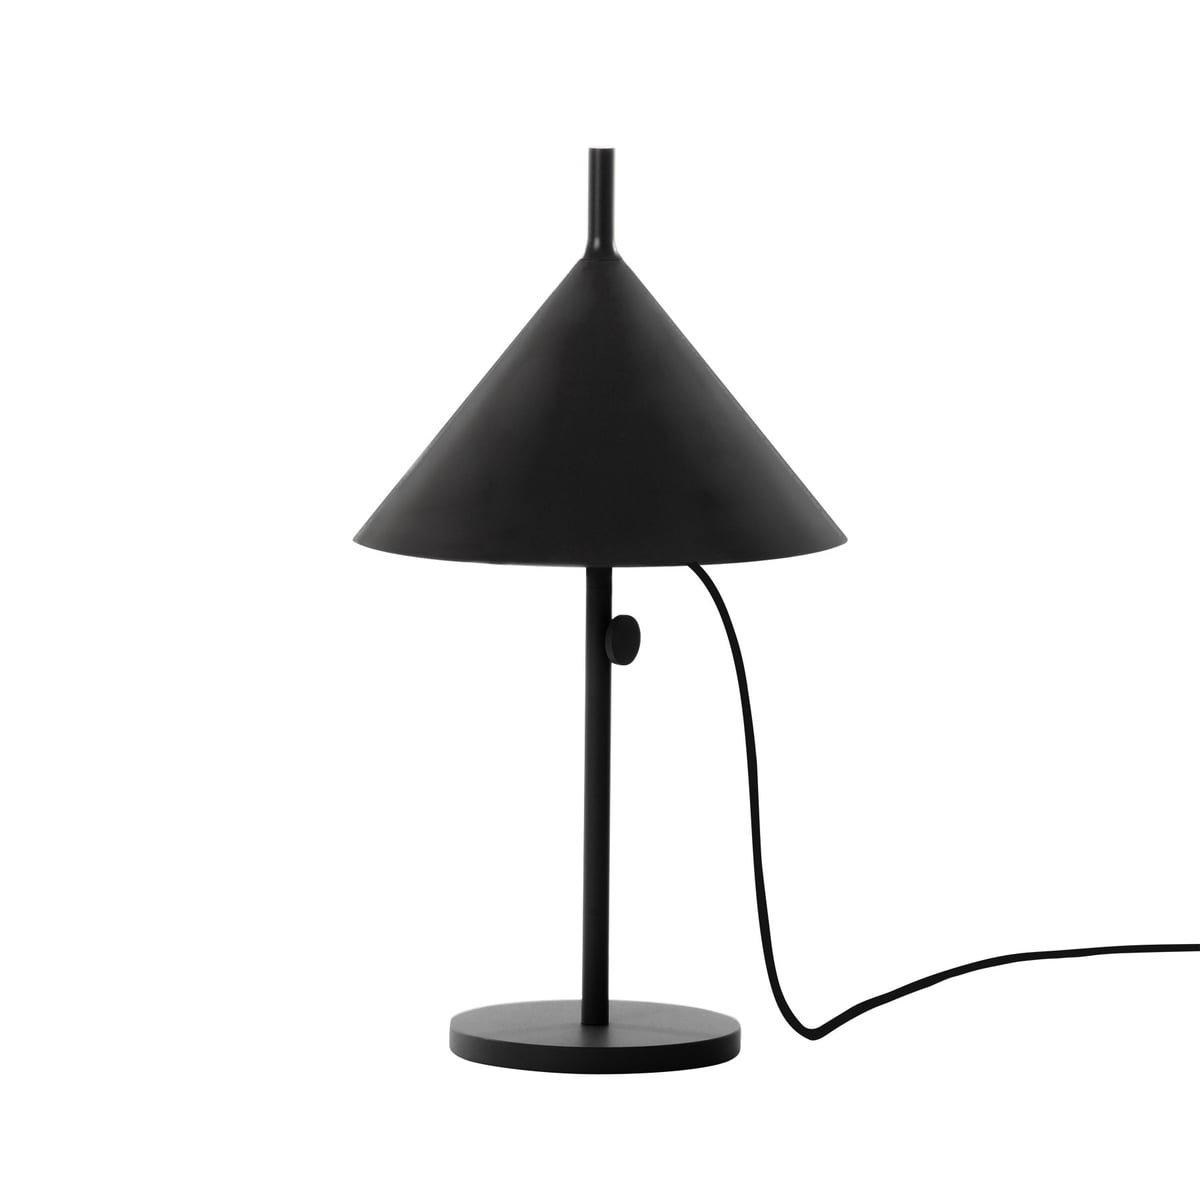 Nendo table lamp cone w132t1 in the shop wstberg nendo table lamp cone w132t1 black aloadofball Image collections